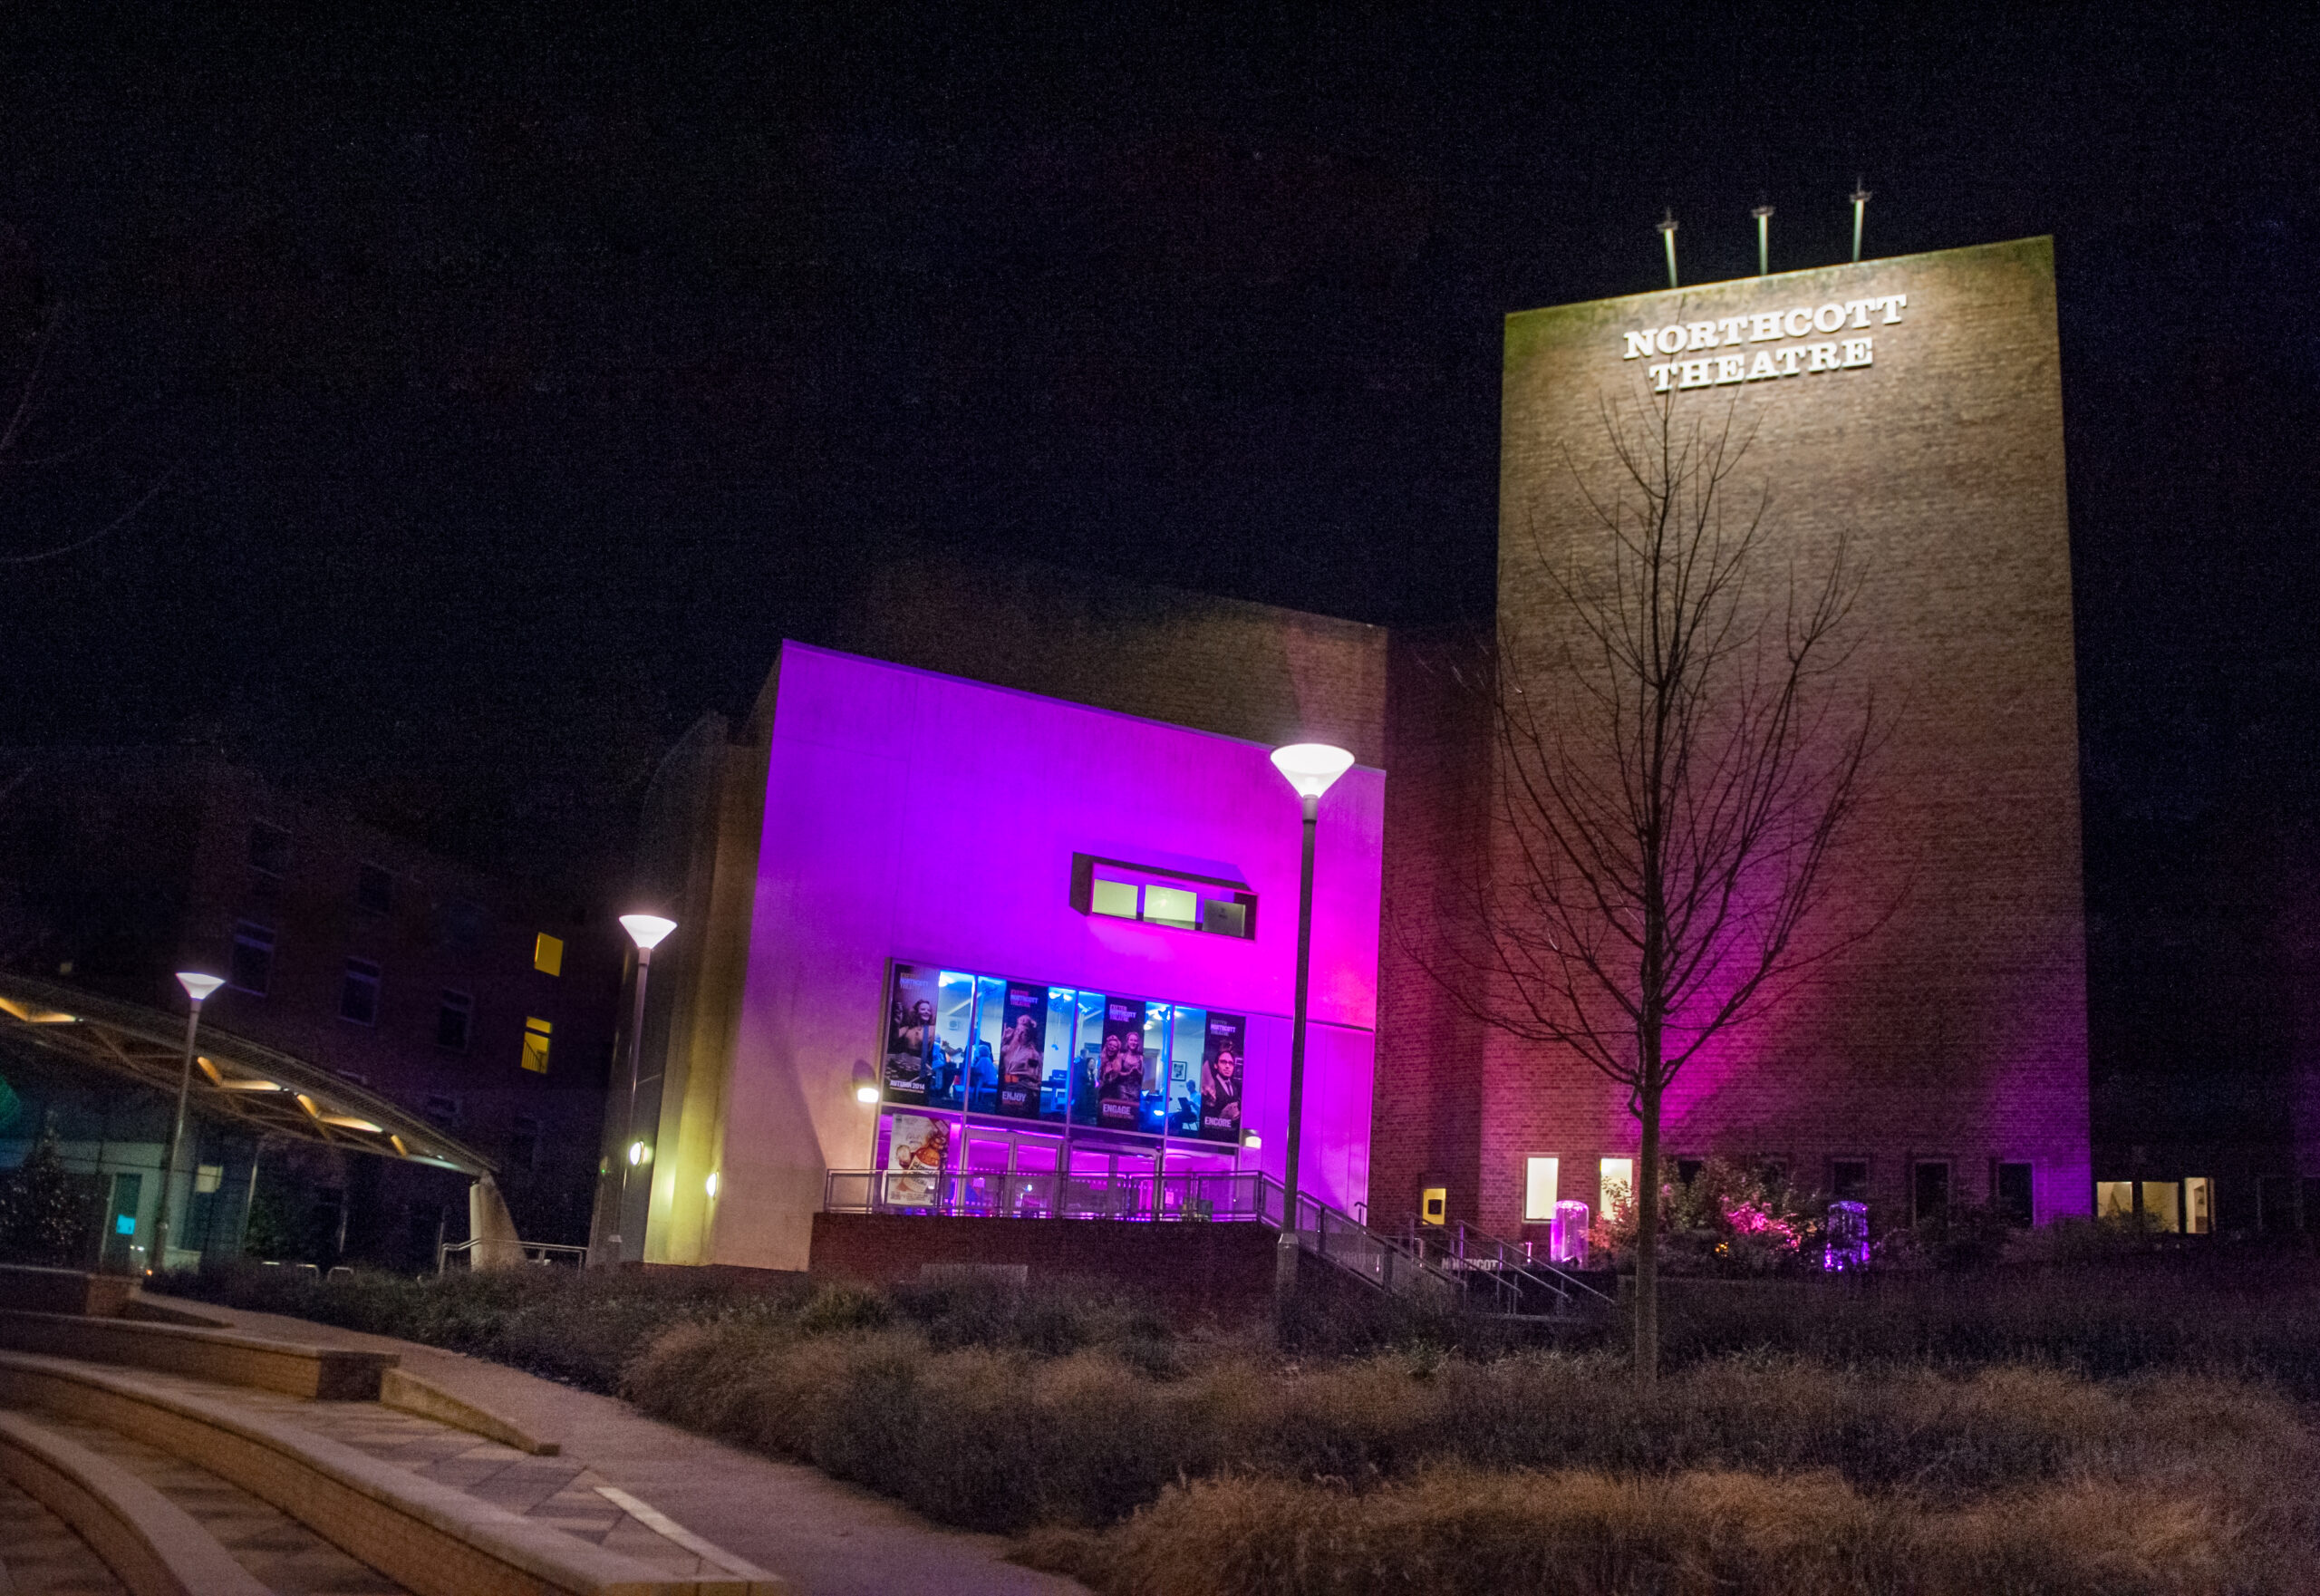 Photo of the Northcott Theatre building at night